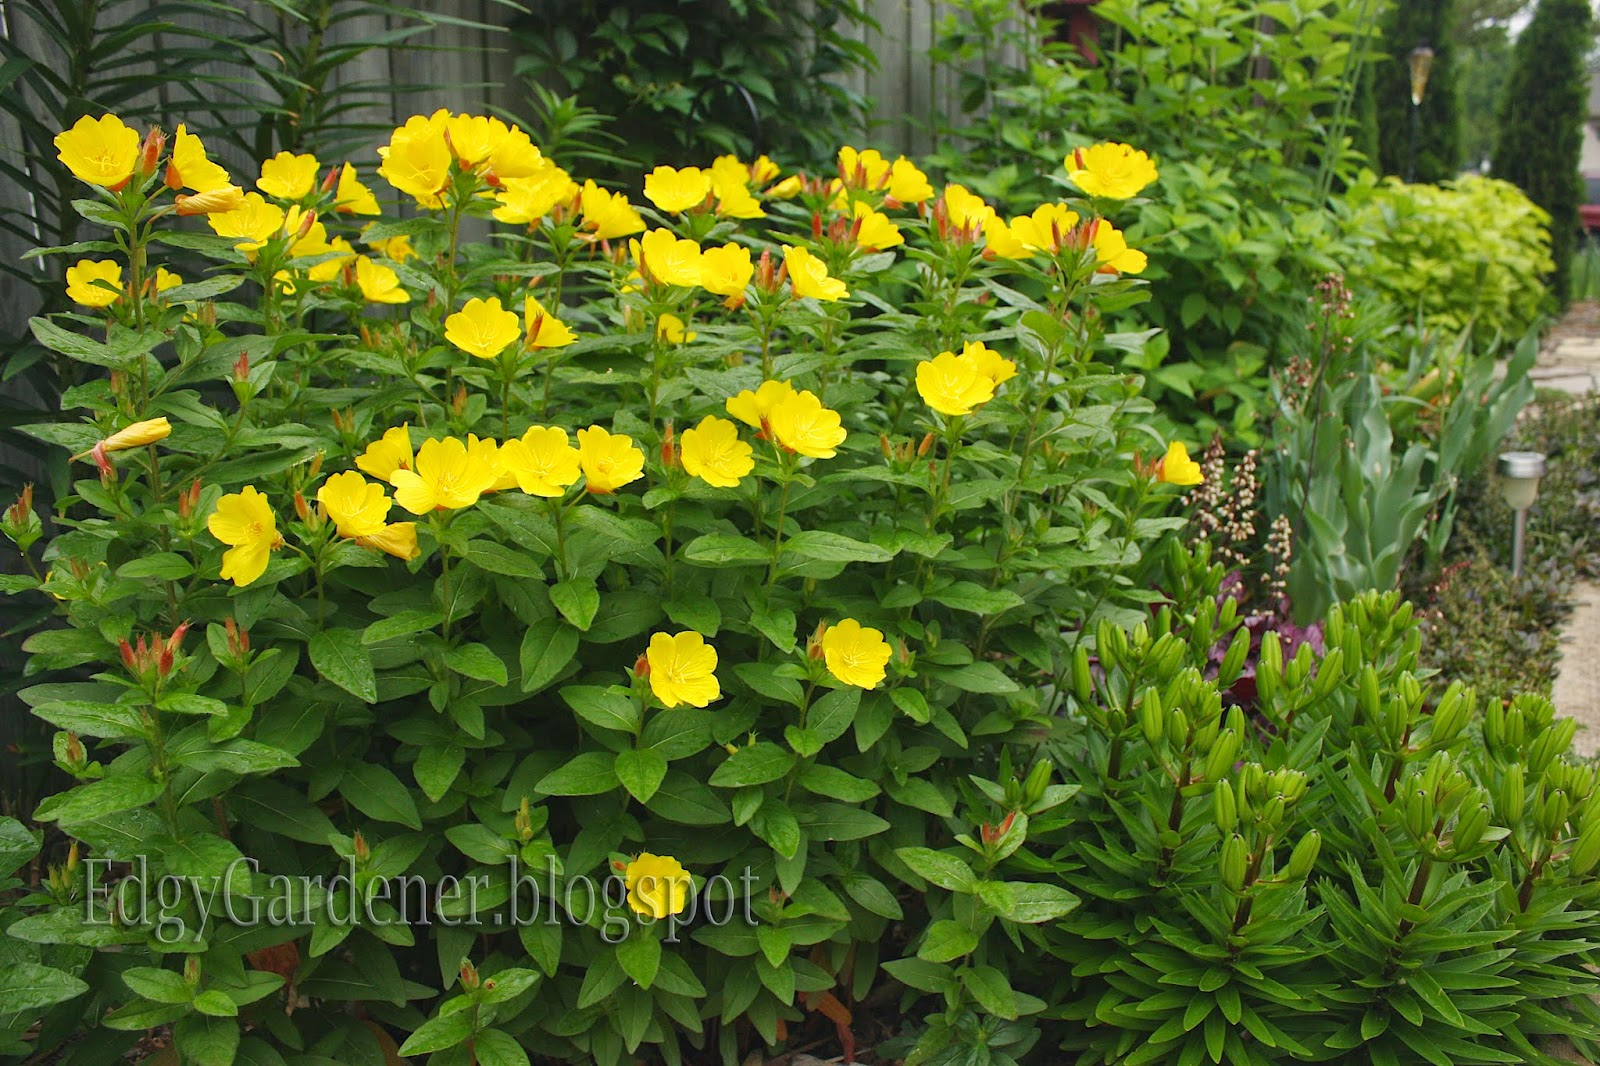 The Edgy Gardener Blog Plant Profile Sundrops Or Evening